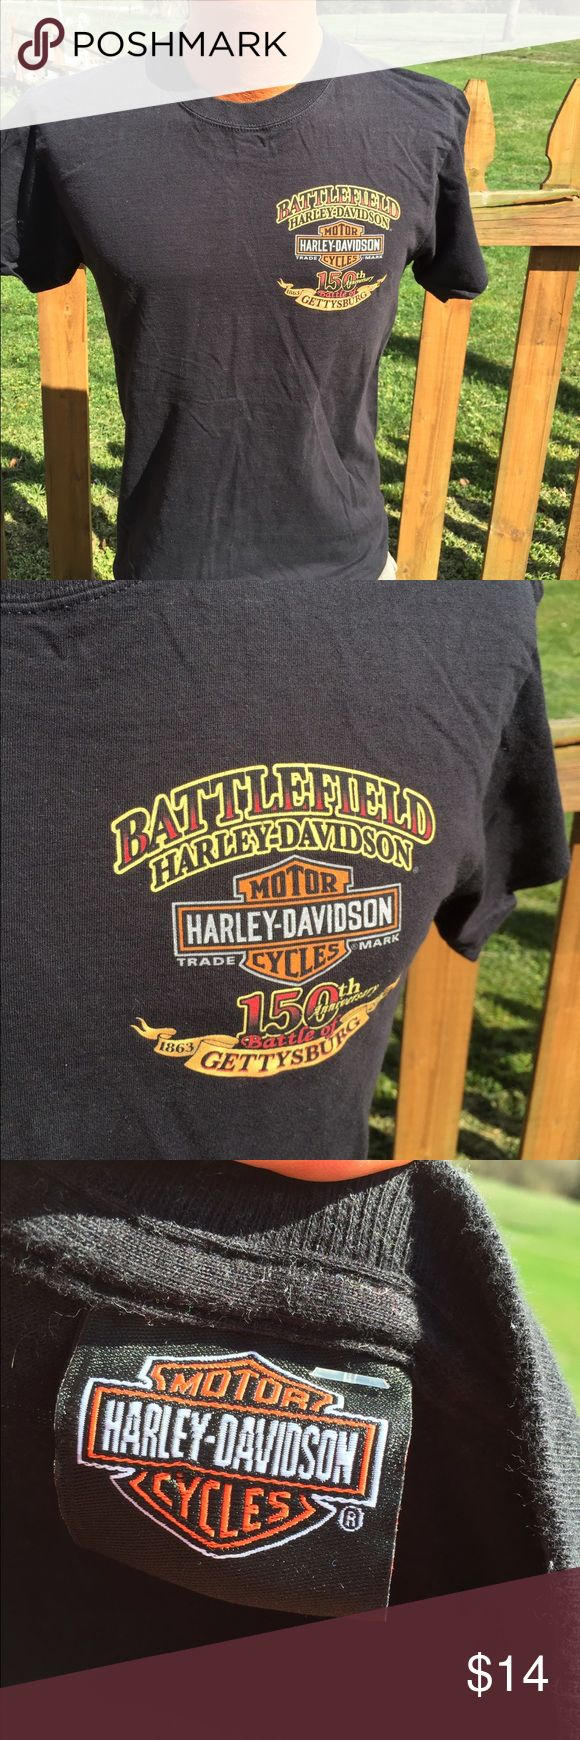 Harley Davidson Mens T Shirt Size Medium Size medium. Gently preowned. Be sure to view the other items in our closet. We offer both women's and Mens items in a variety of sizes. Bundle and save!! Thank you for viewing our item!! Harley-Davidson Shirts Tees - Short Sleeve